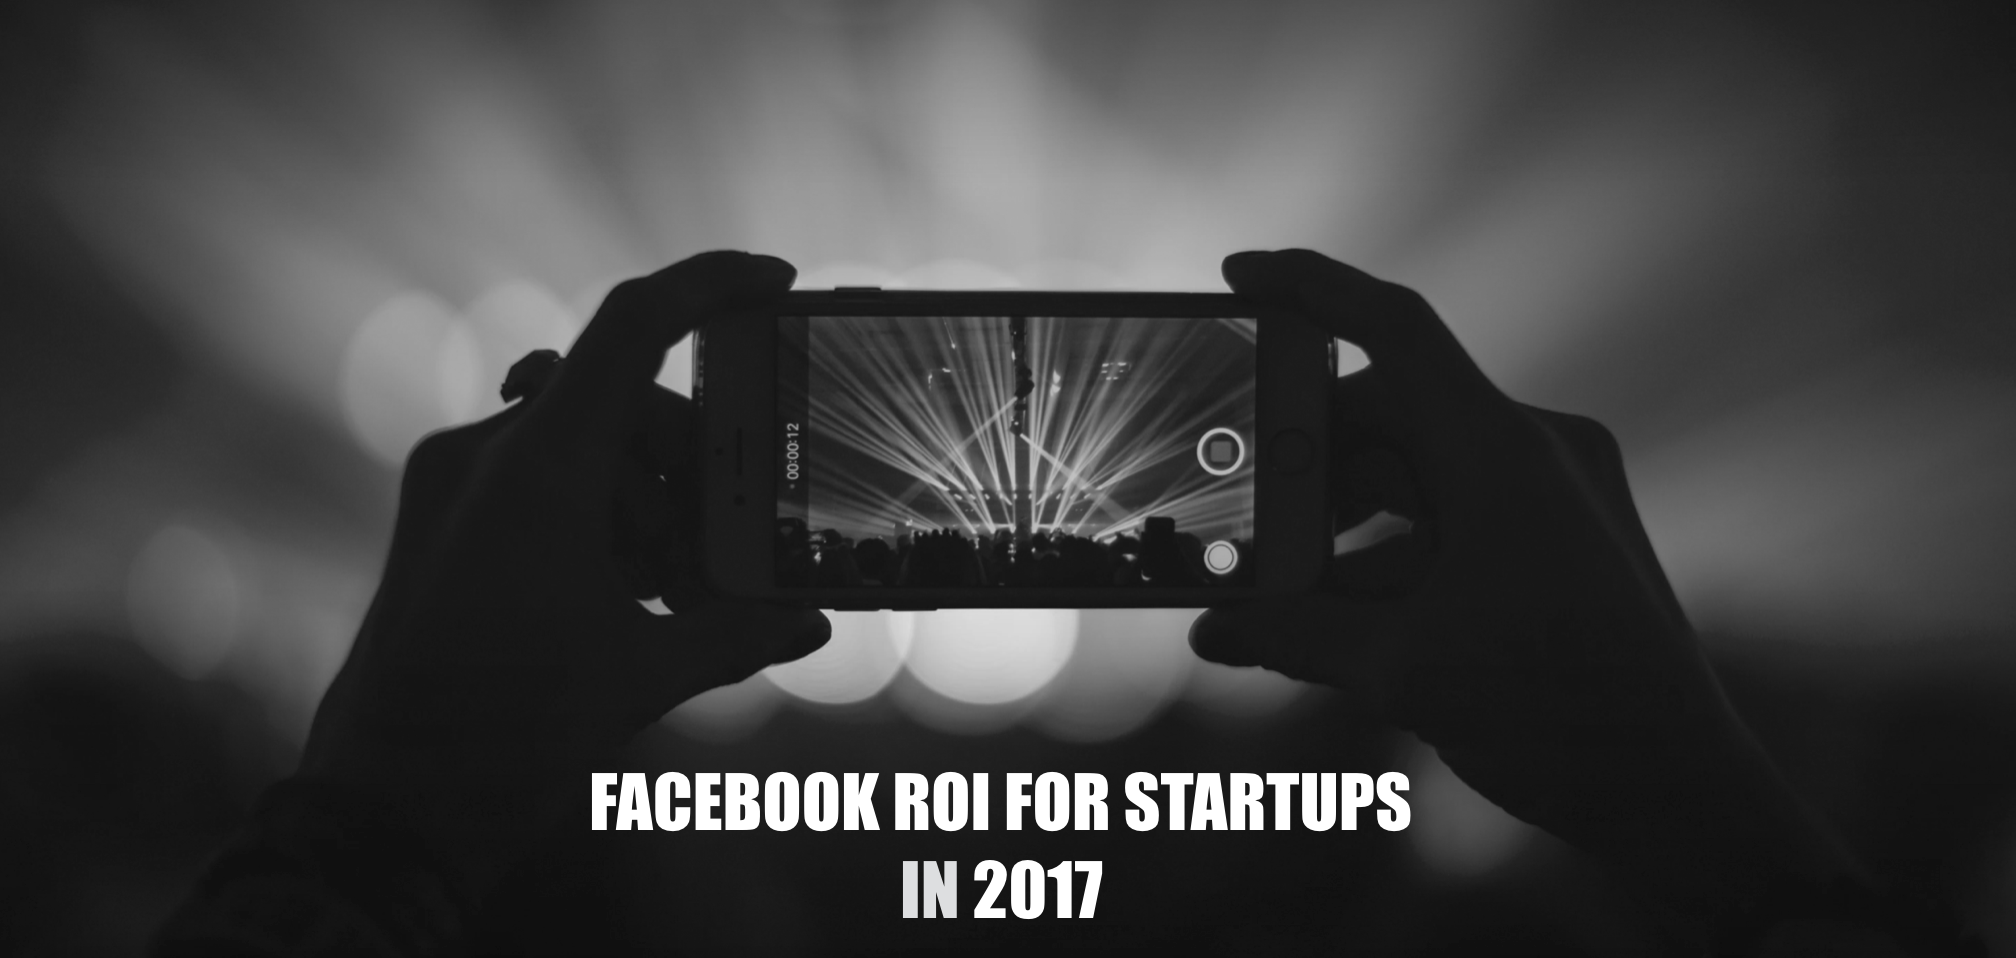 Facebook ROI for Startups in 2017